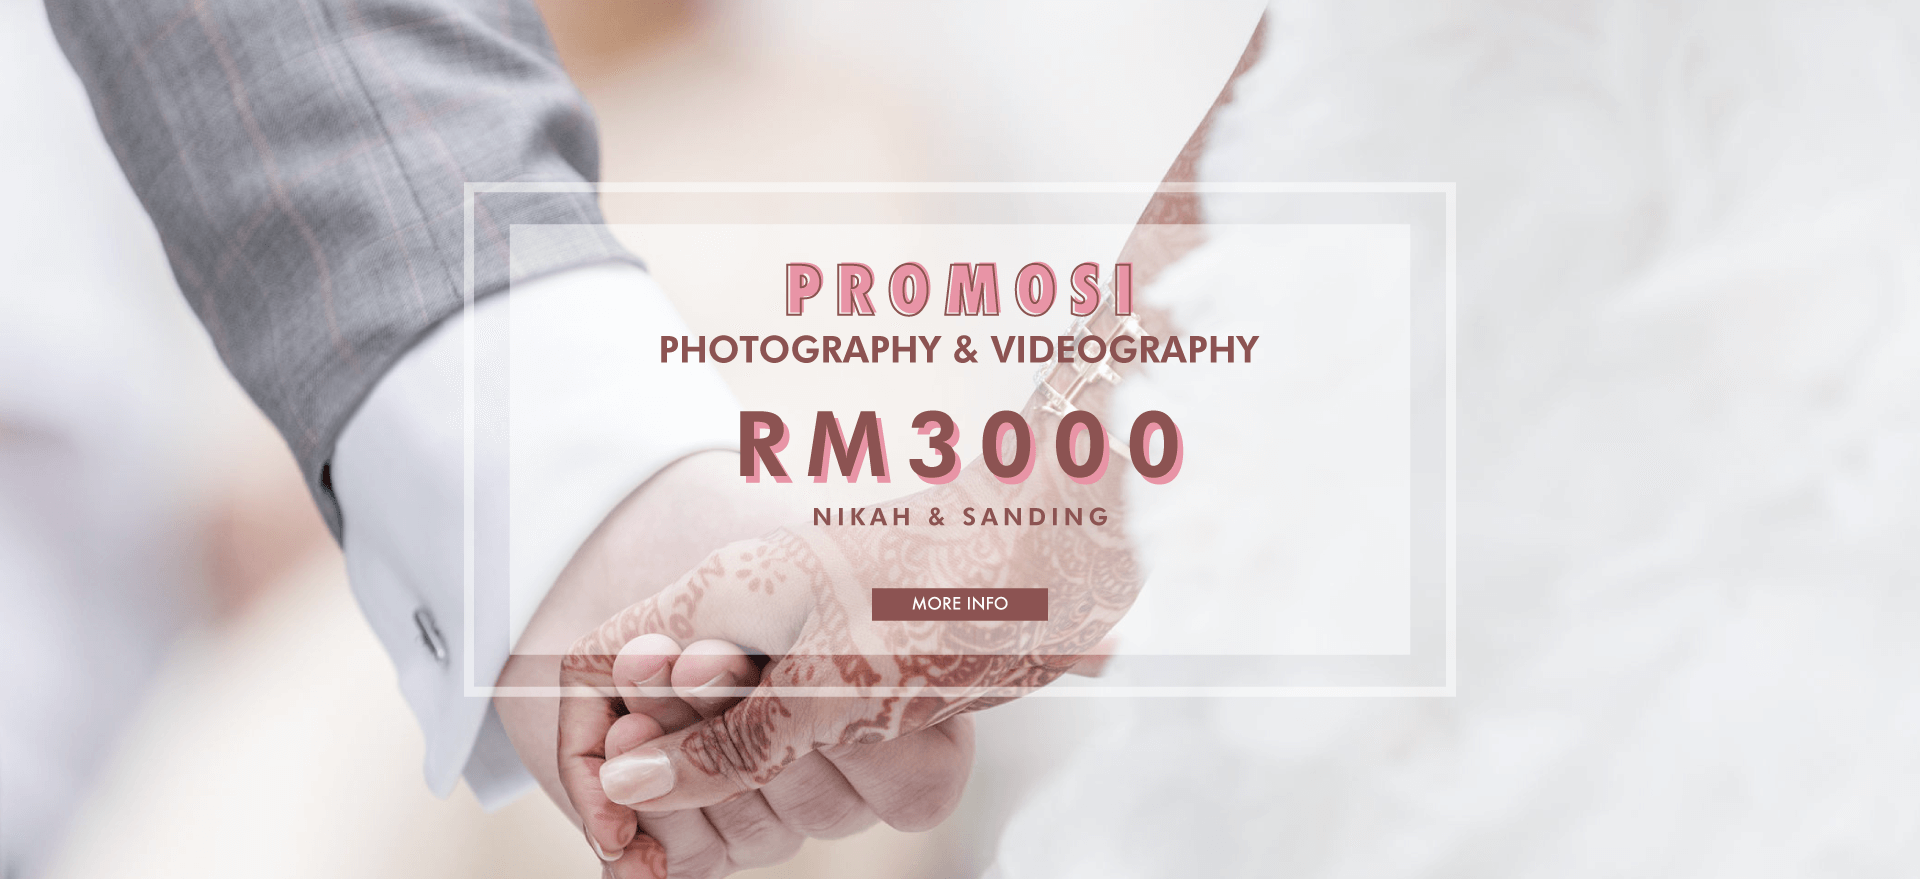 Photography&Videography Promotion